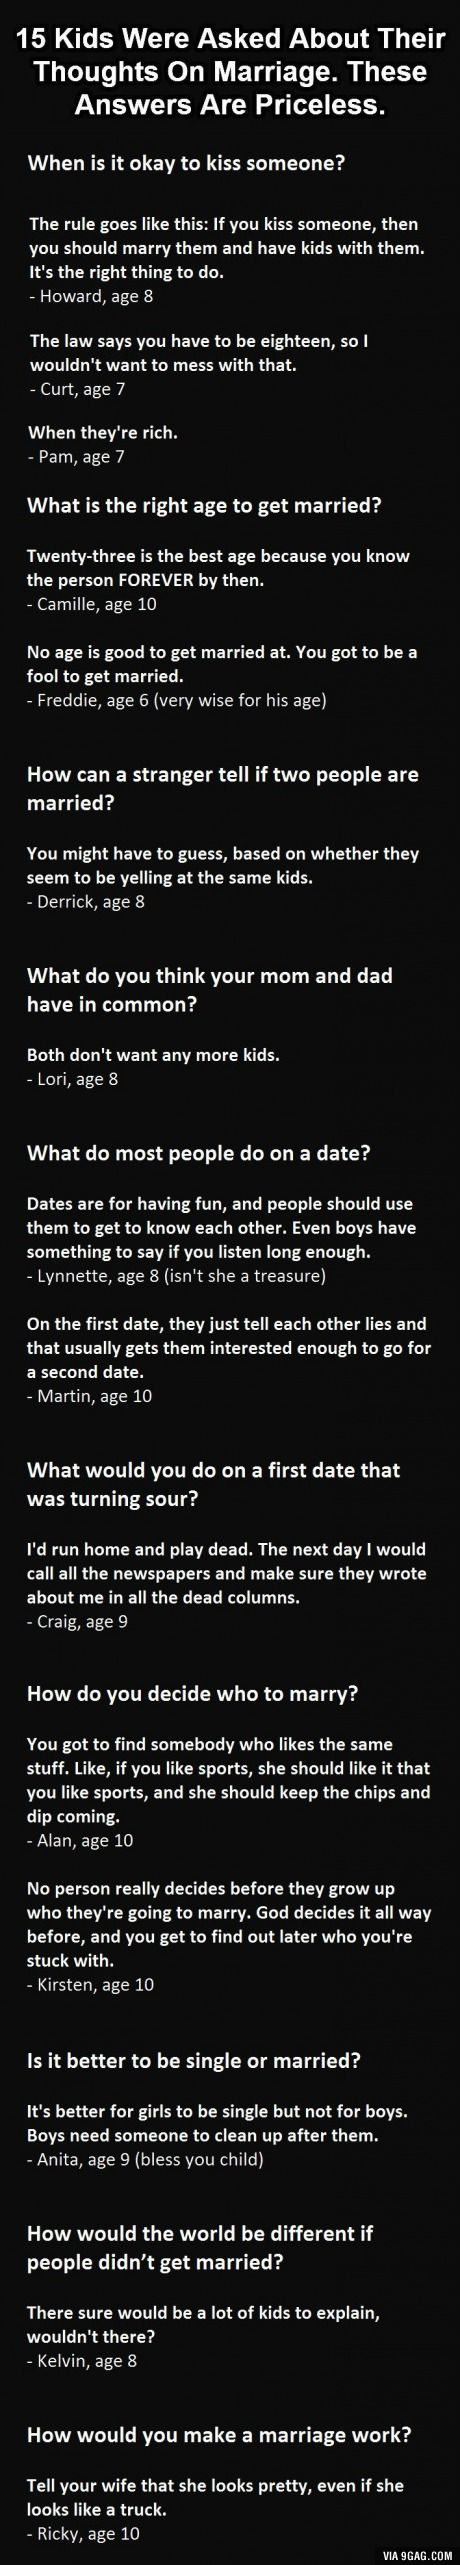 Kid's take on marriage.  Absolutely adorable and hilarious.